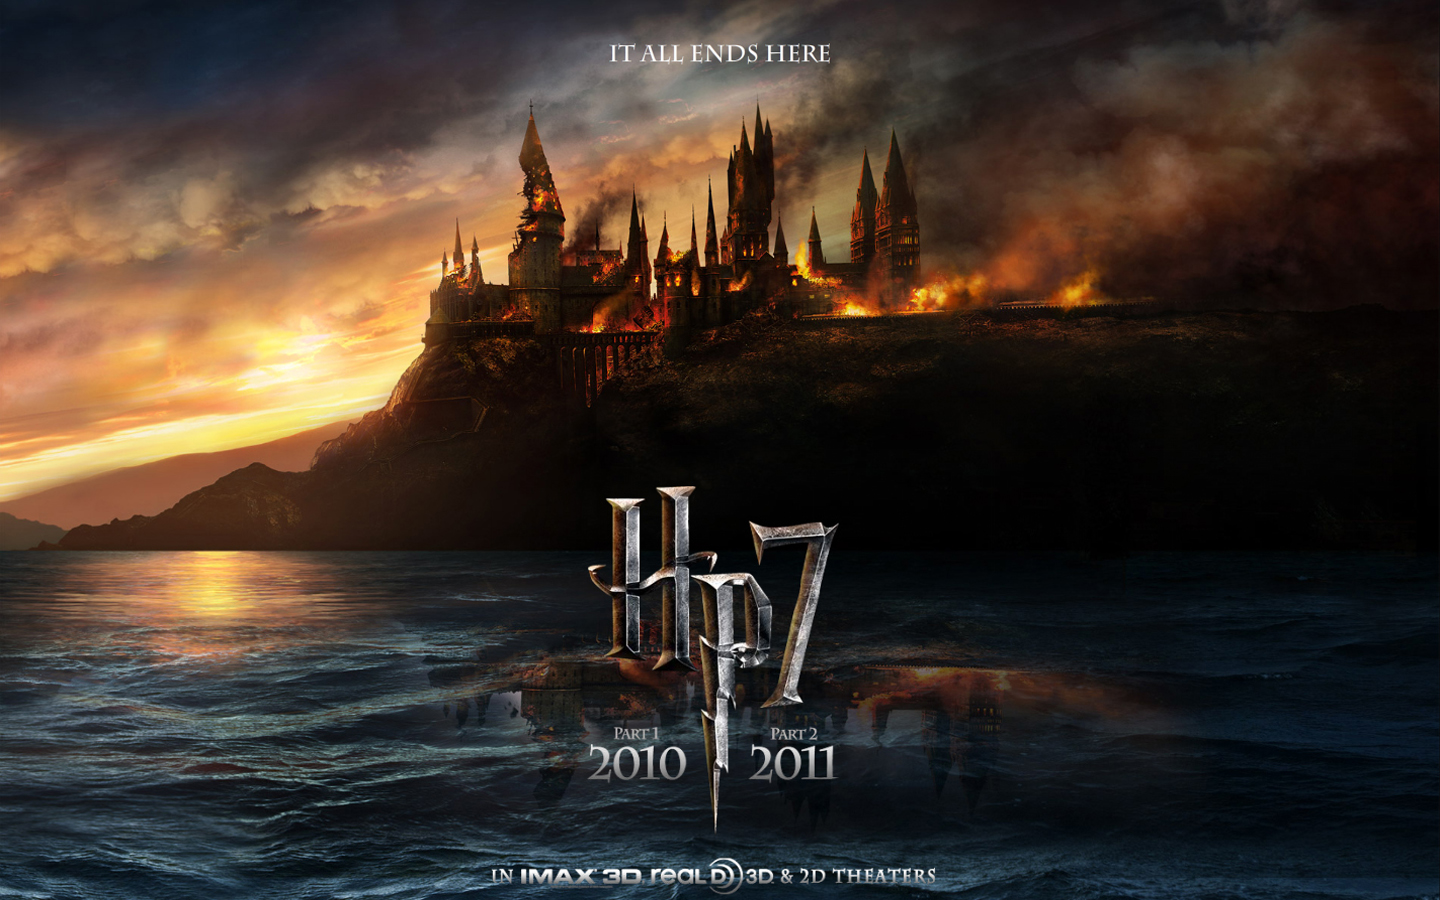 http://3.bp.blogspot.com/-TzBPBnLk2xc/TiBL3ET41nI/AAAAAAAABNg/cPFQoyWuLF0/s1600/Harry-Potter-and-The-Deathly-Hallows.jpg